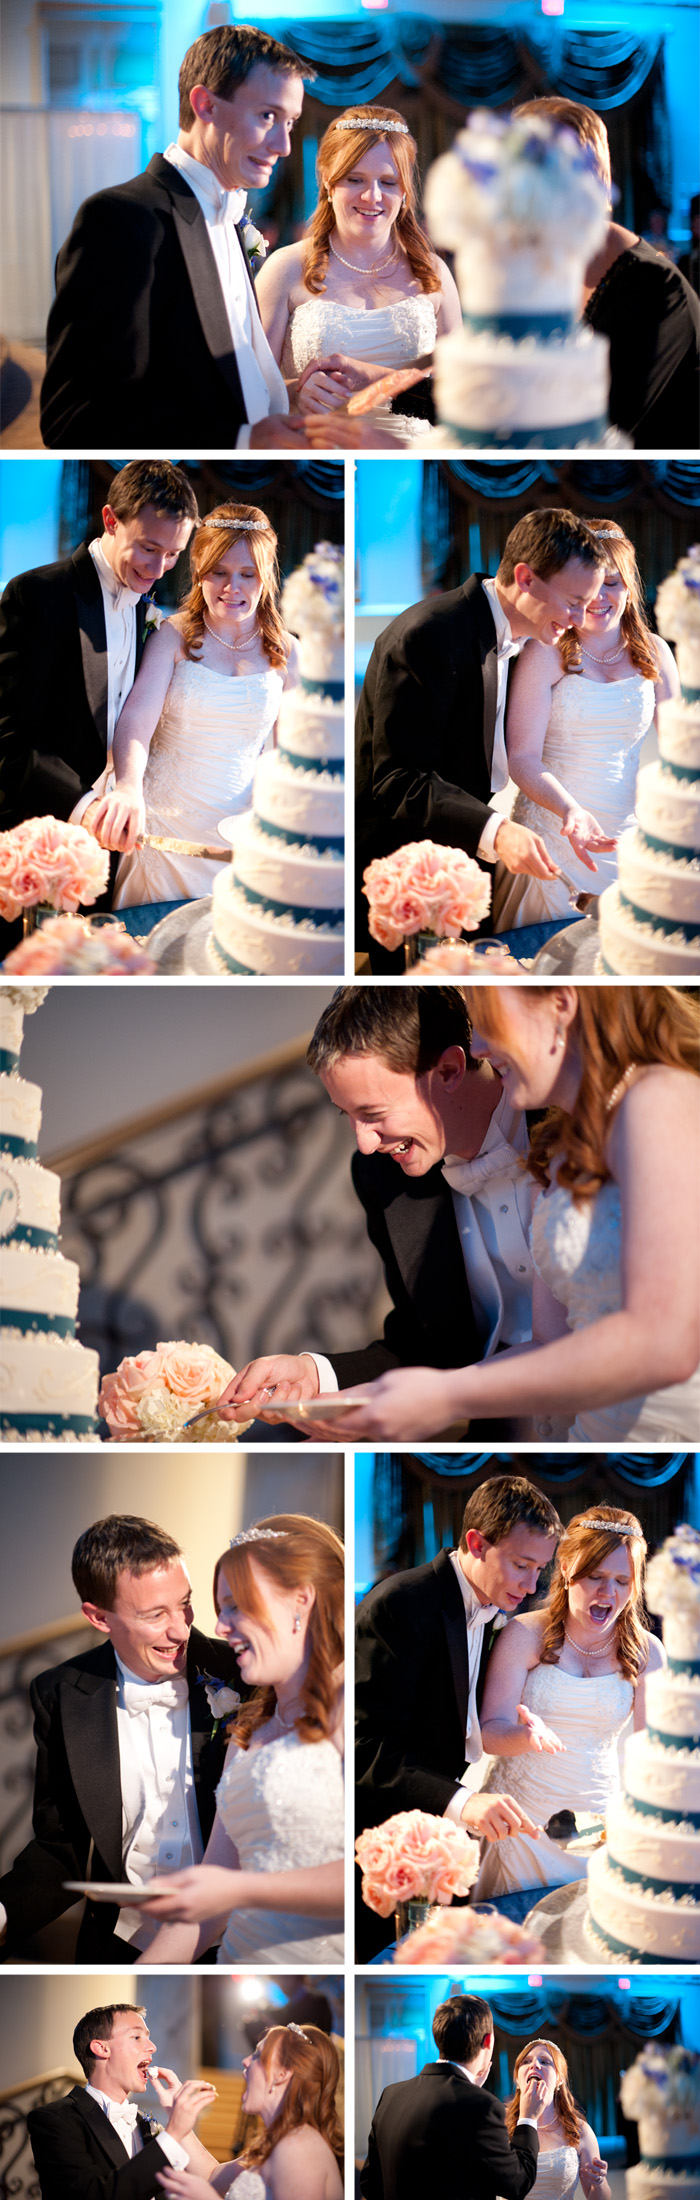 cake cutting2 Jillian + Charles | Garner, NC Wedding